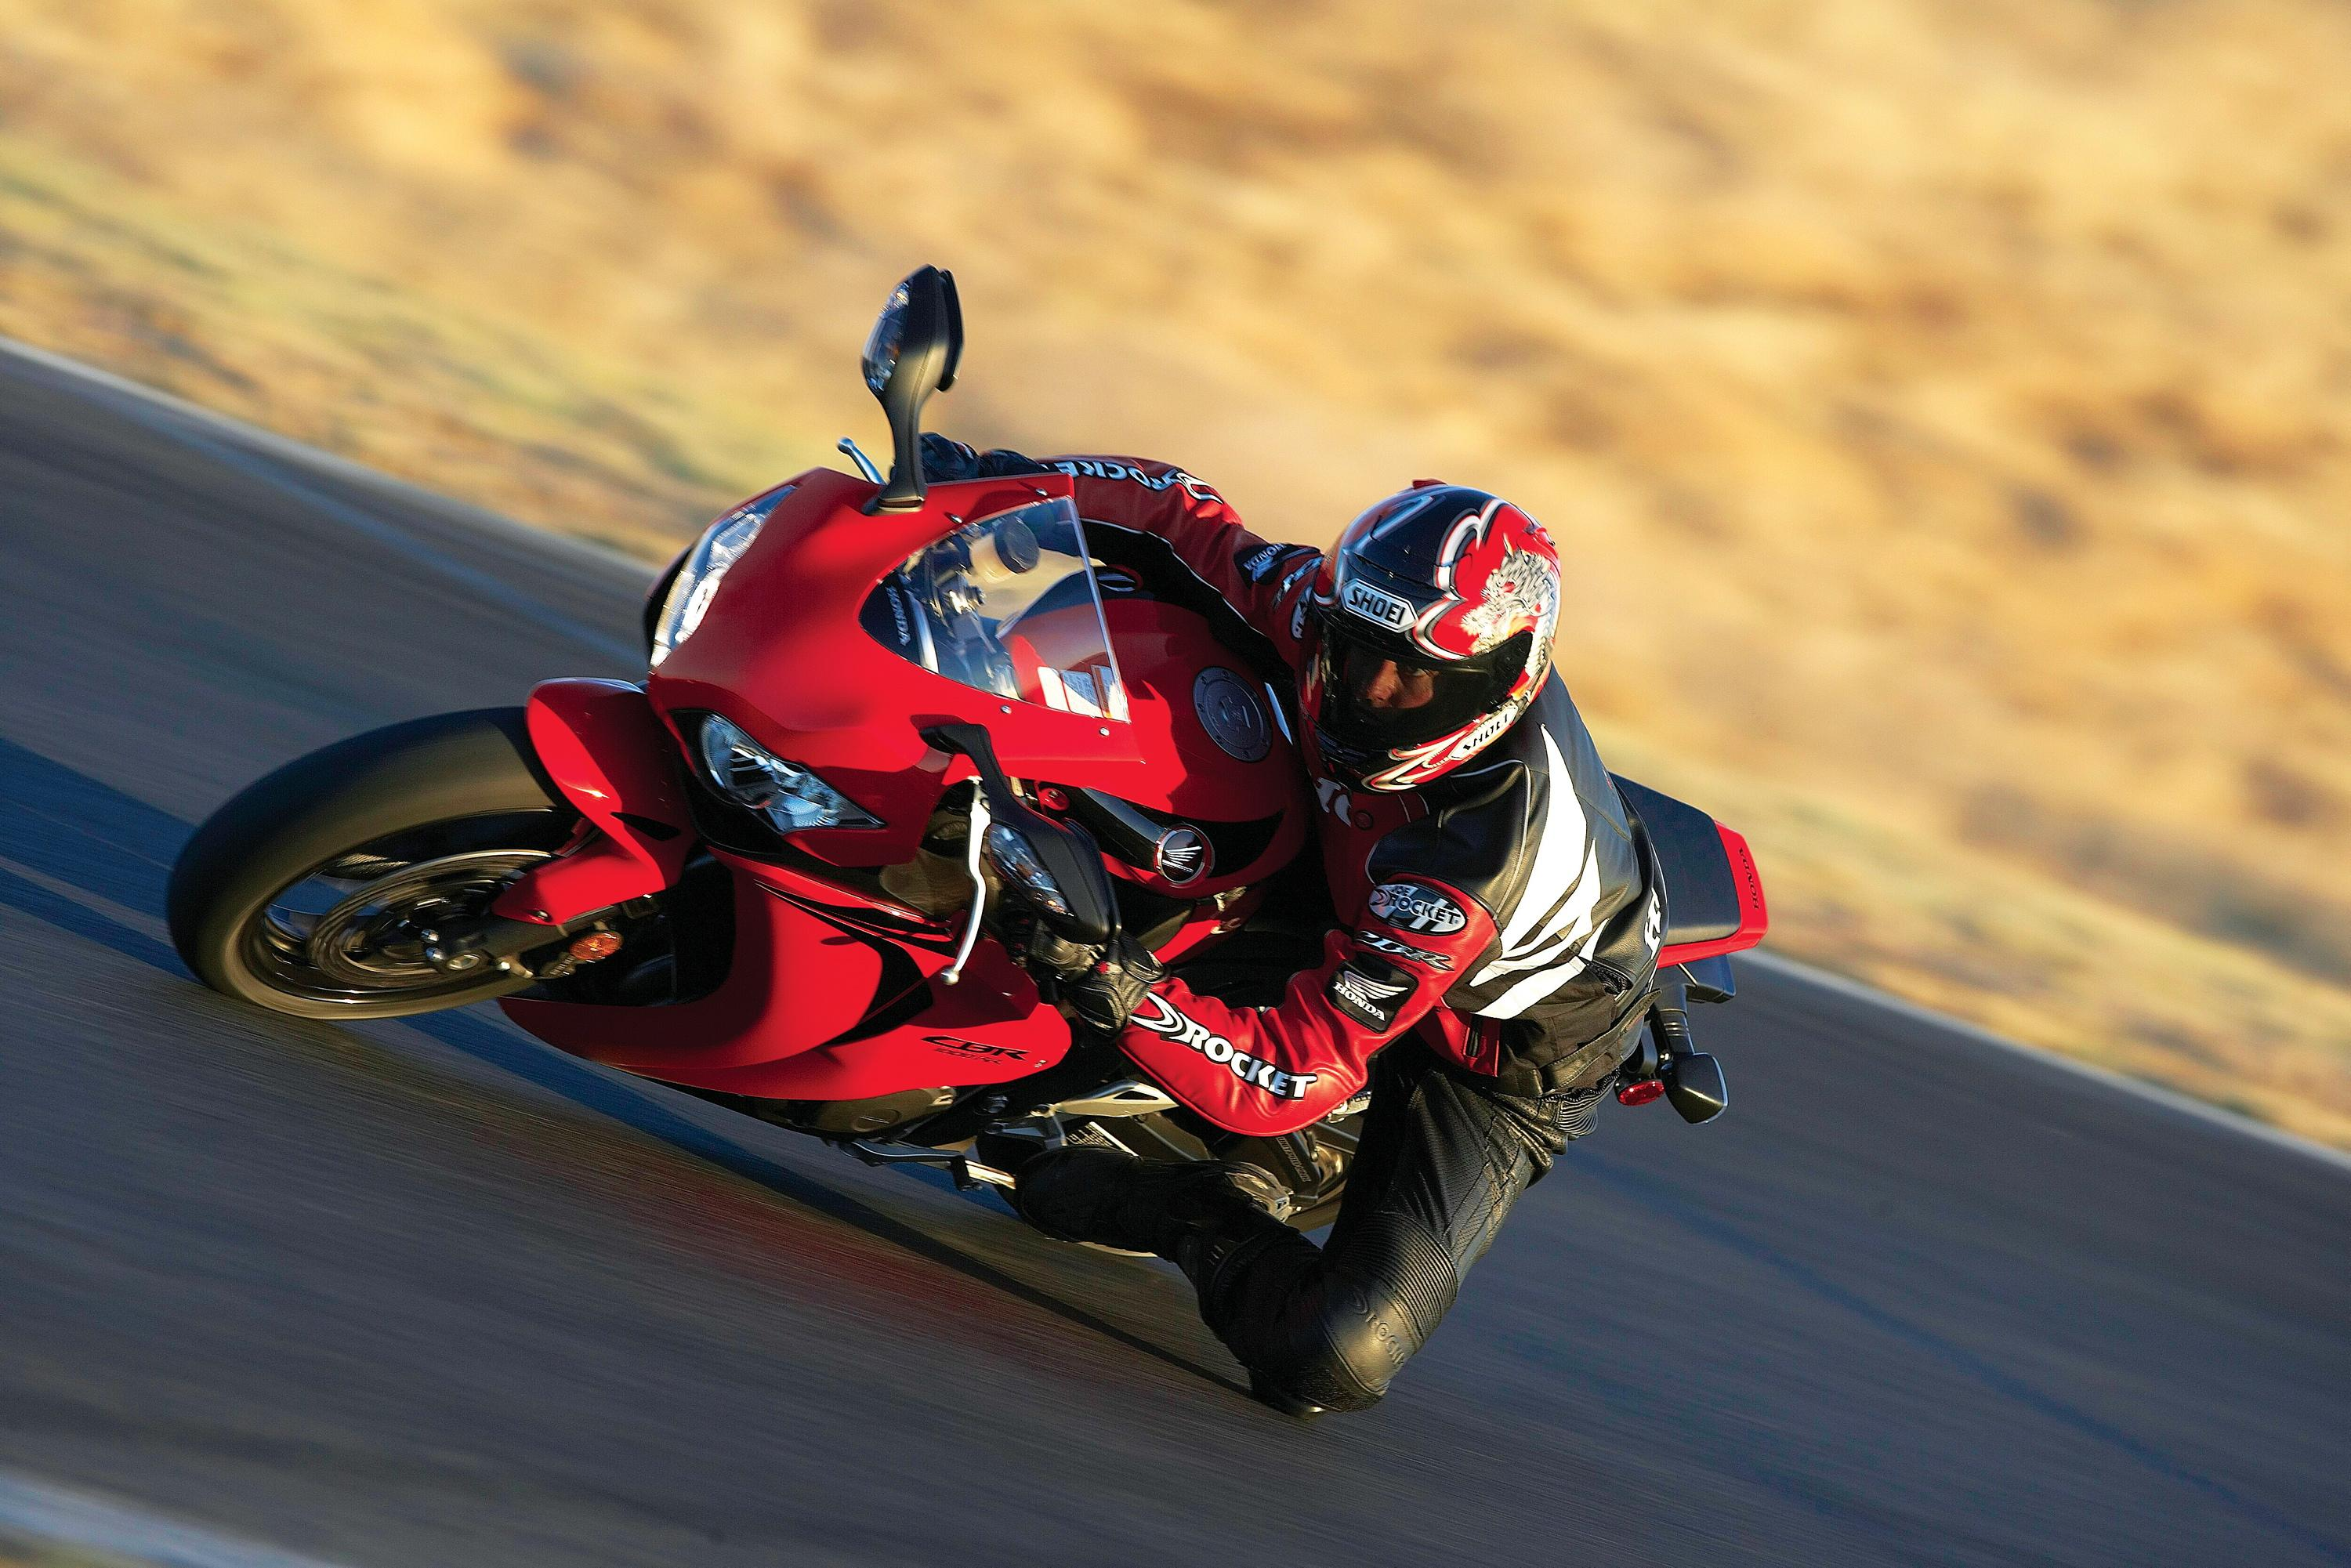 2008 Honda CBR1000RR Gallery 202863 | Top Speed